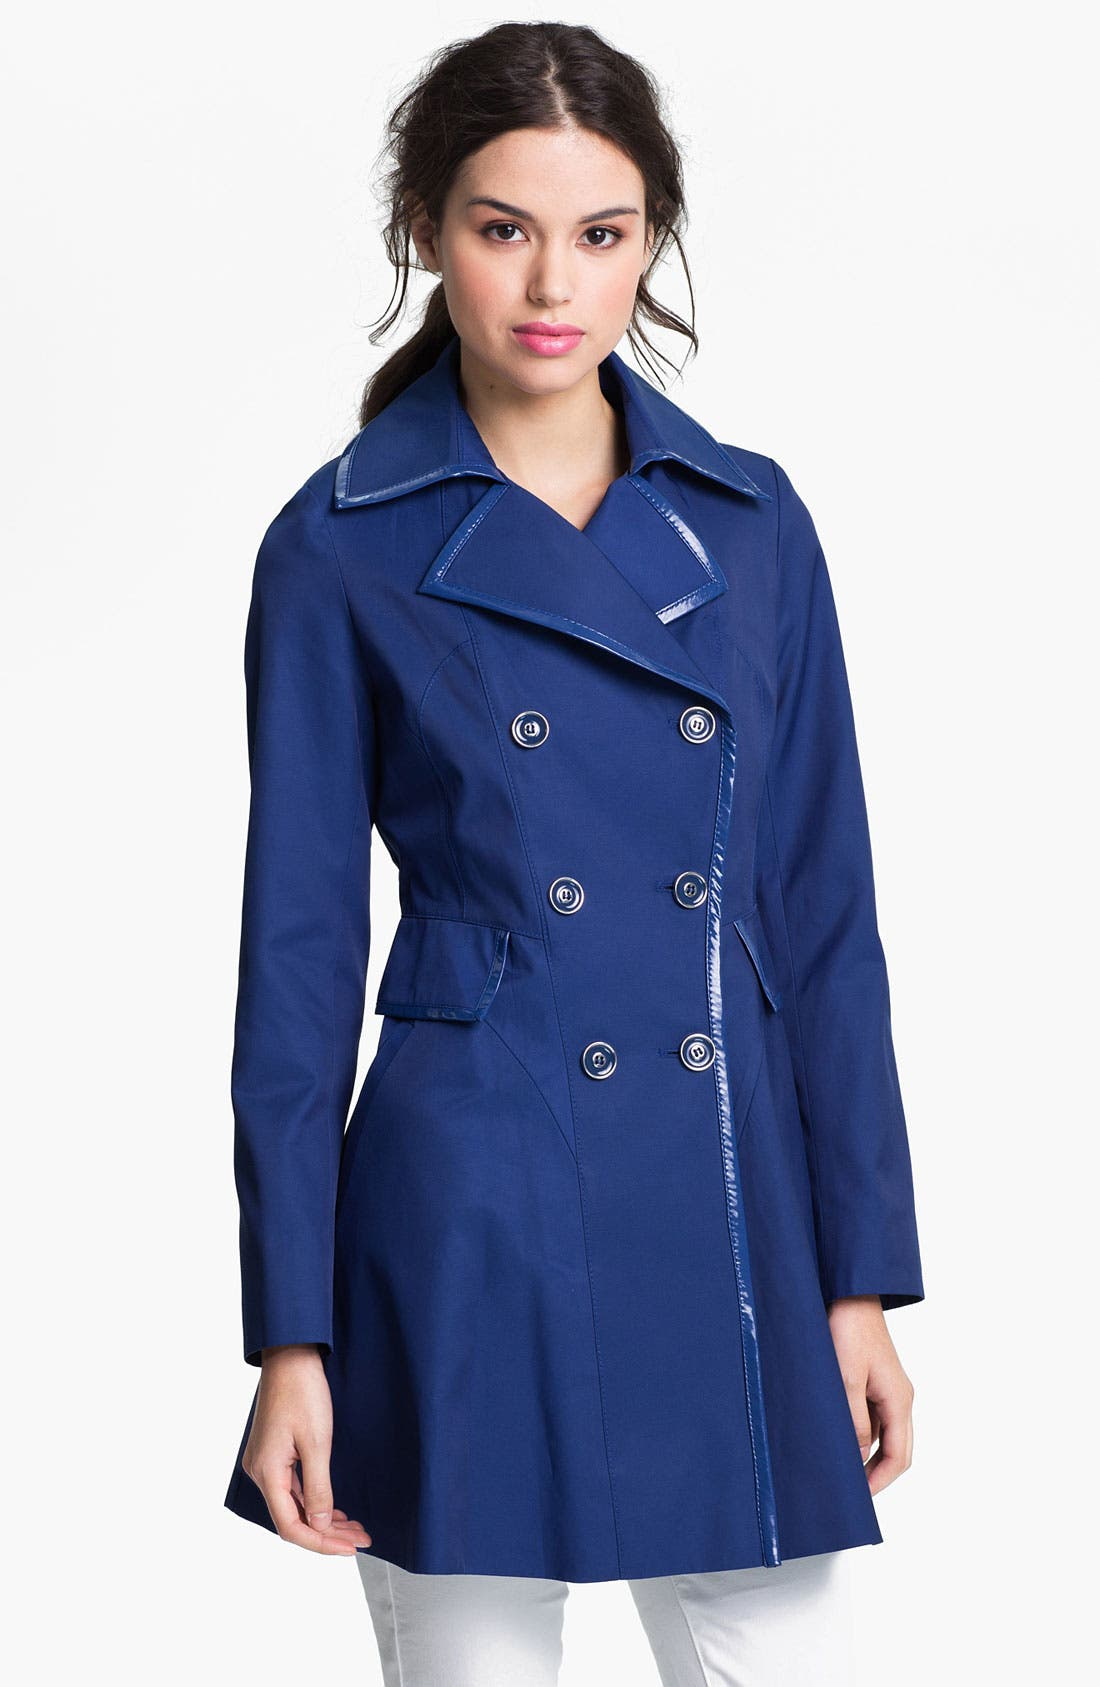 Main Image - Via Spiga Patent Trim Trench Coat (Regular & Petite) (Online Only)